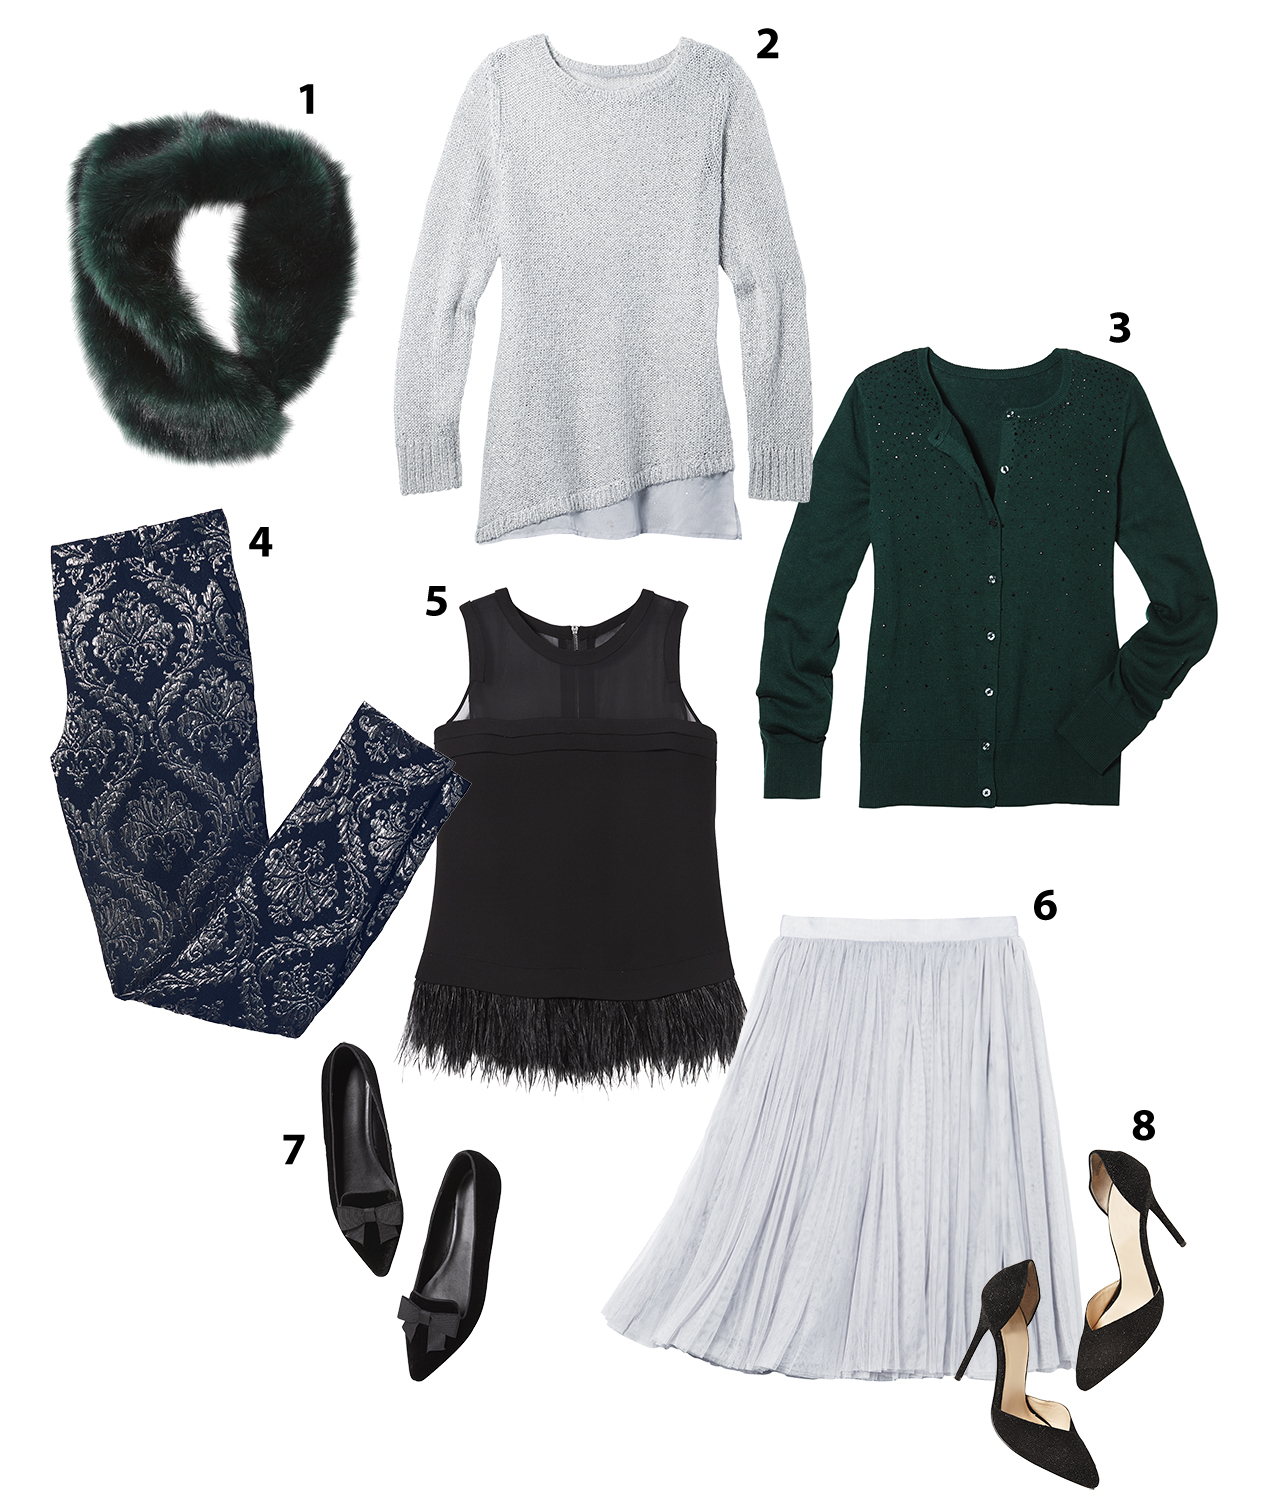 8 pieces for holiday wardrobe